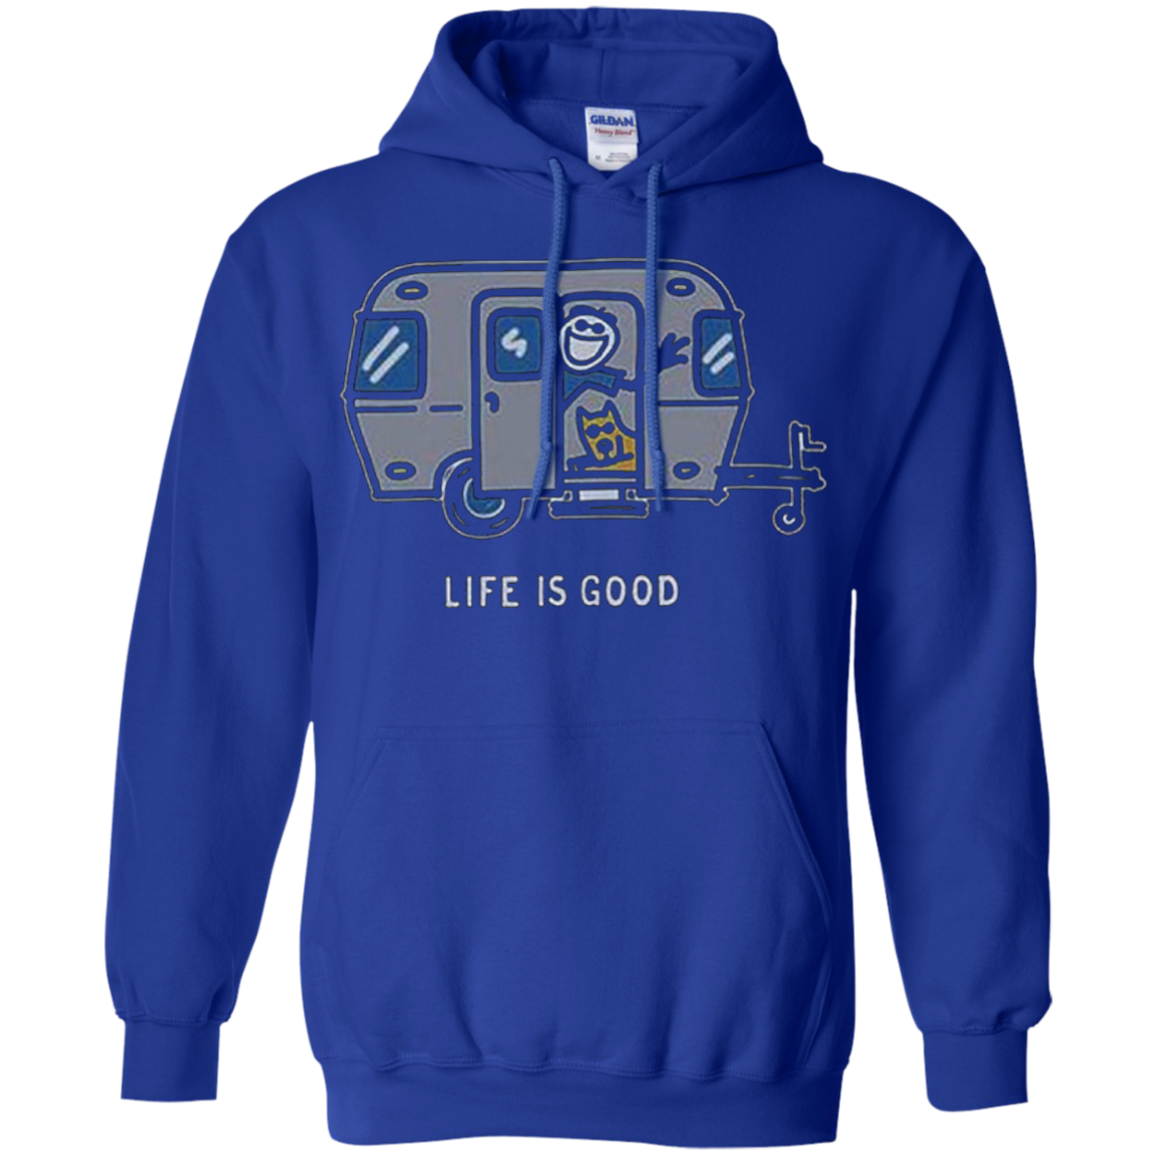 37.96 USD ;  Life is Good. Camping Women's Crusher Tee - Airstream Hello T-Shirt ;  Life is Good. Camping Women's Crusher Tee - Airstream Hello T-Shirt #LifeisGood.CampingWomen'sCrusherTee-AirstreamHello #LifeisGood.CampingWomen'sCrusherTee-Airstream #LifeisGood.CampingWomen'sCrusherTee- #LifeisGood.CampingWomen'sCrusherTee #LifeisGood.CampingWomen'sCrusher #LifeisGood.CampingWomen's #LifeisGood.Camping #LifeisGood. #Lifeis #Life #Life #is #Good. #Camping #Women's #Crusher #Tee #- #Airstream #He